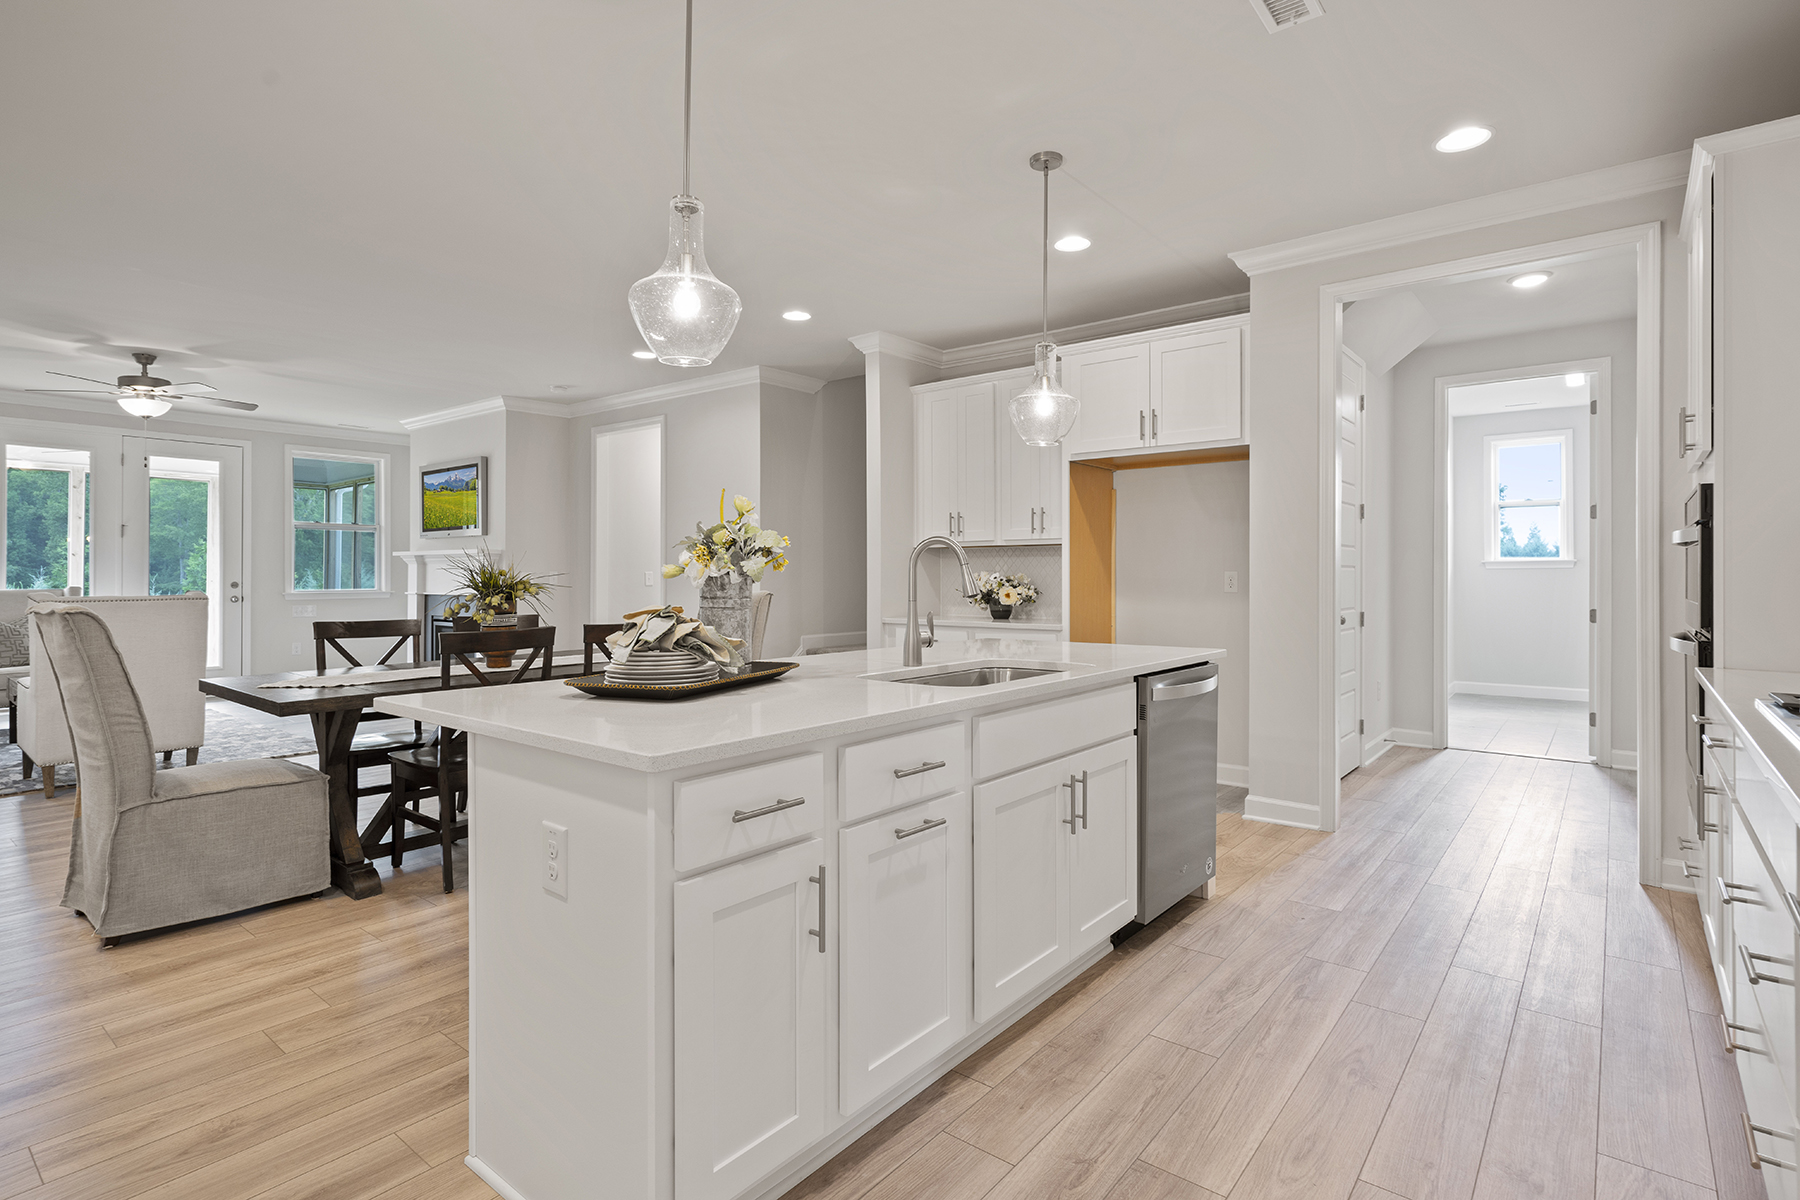 Hamilton Plan Kitchen at Fairview Park in Cary North Carolina by Mattamy Homes